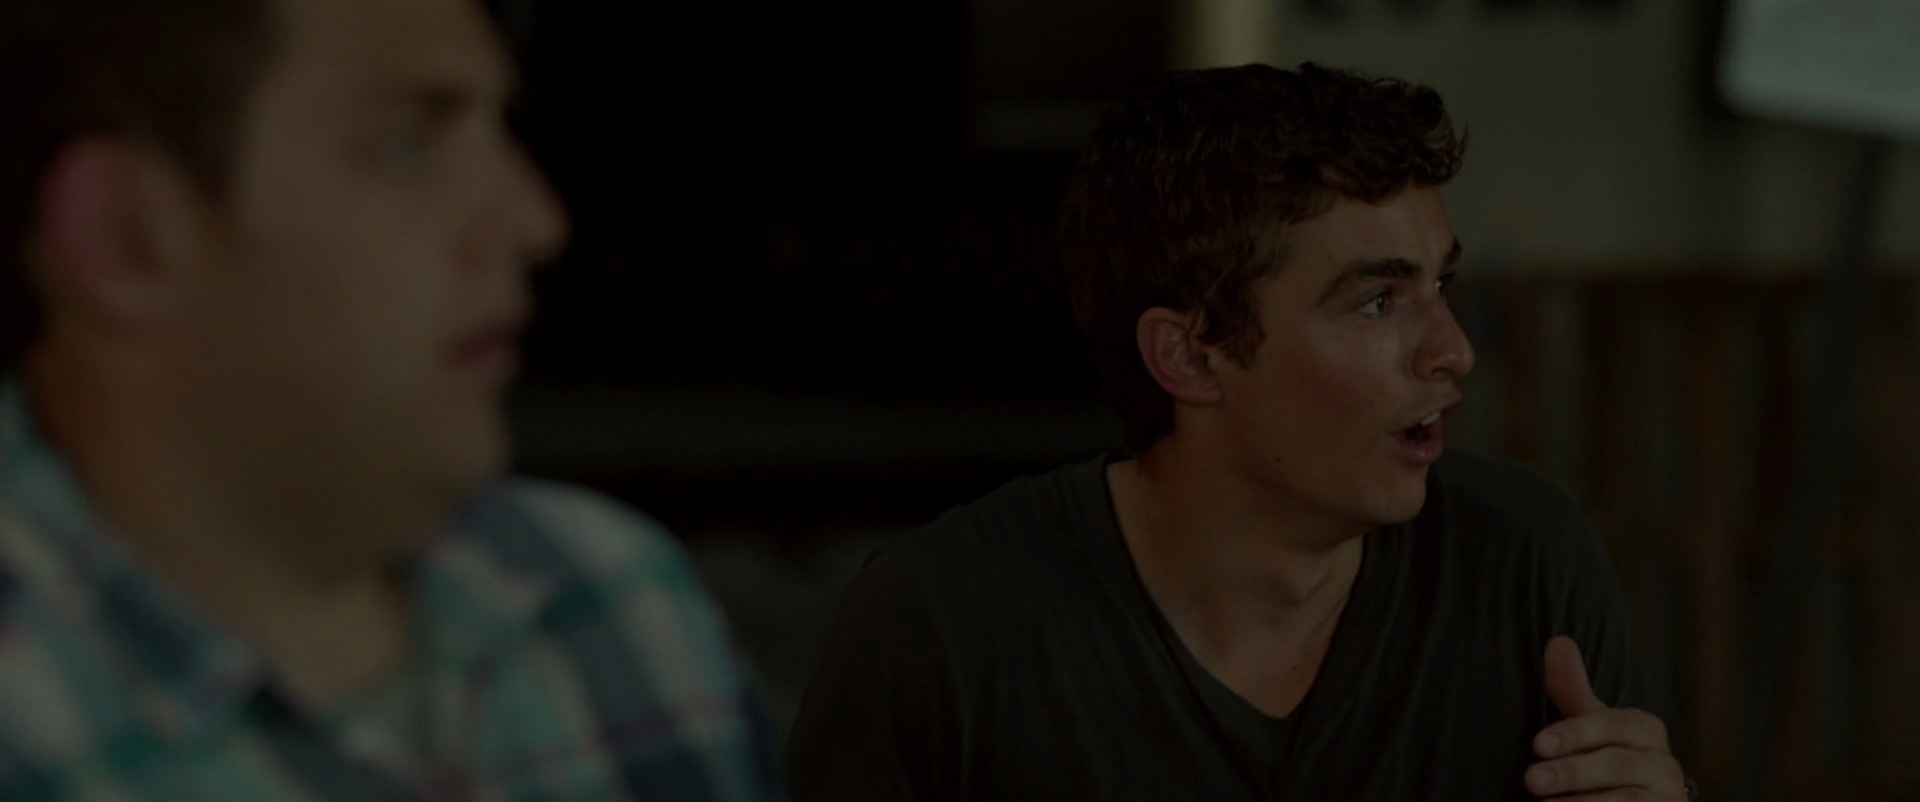 21 jump street 2012 dave franco photo 34905351 fanpop